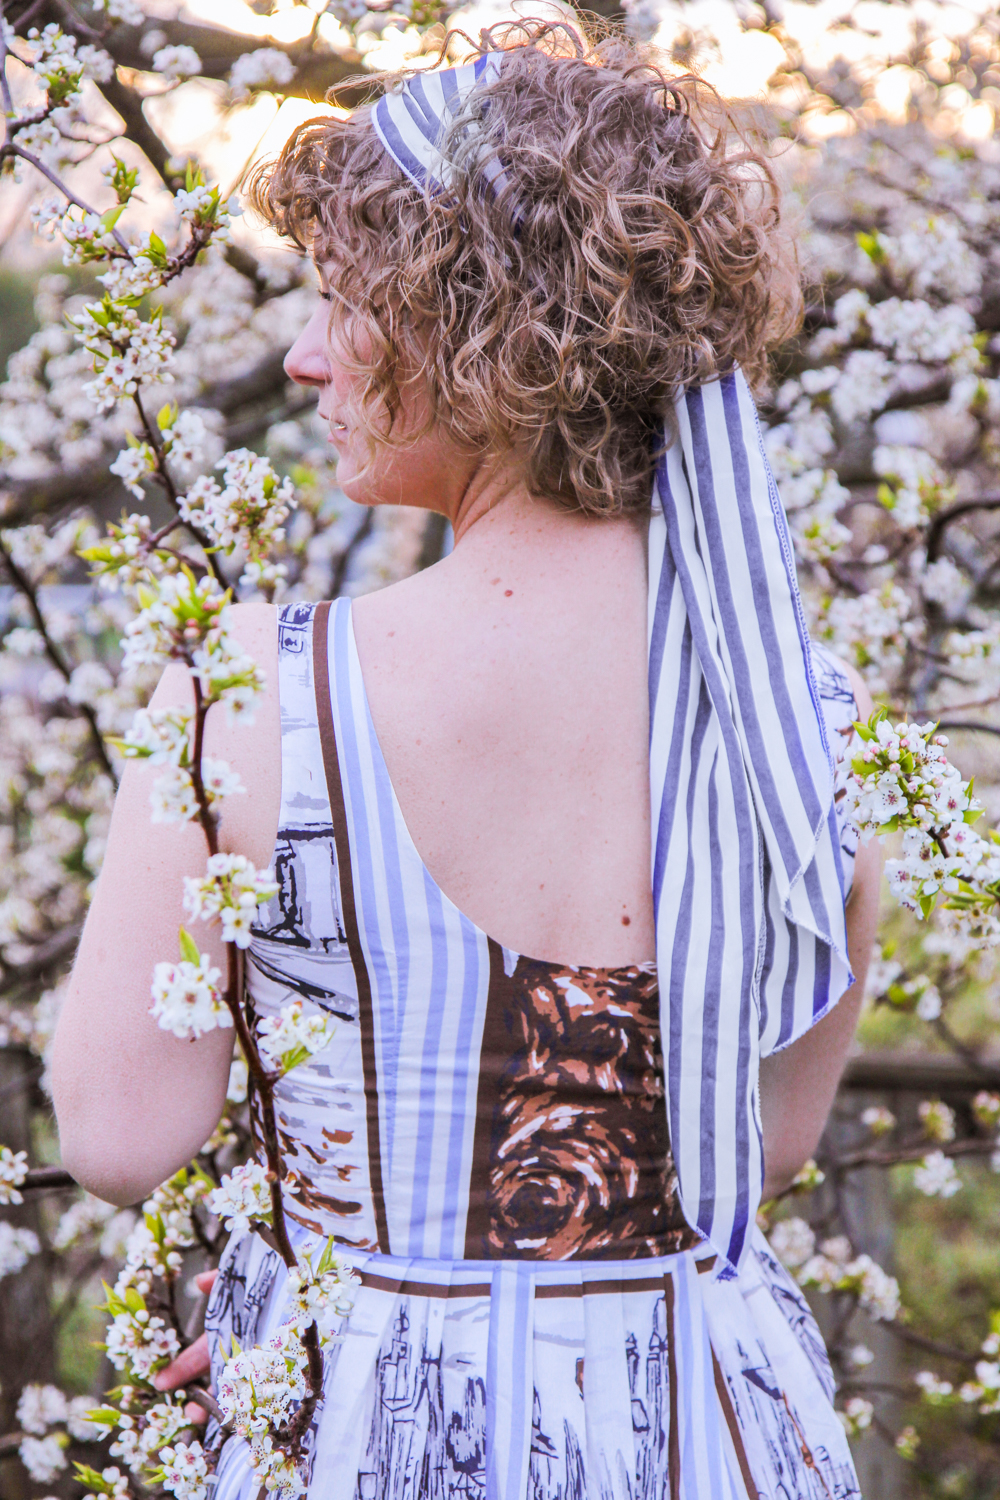 Liana of @findingfemme in Lazybones Venesia print organic cotton dress.